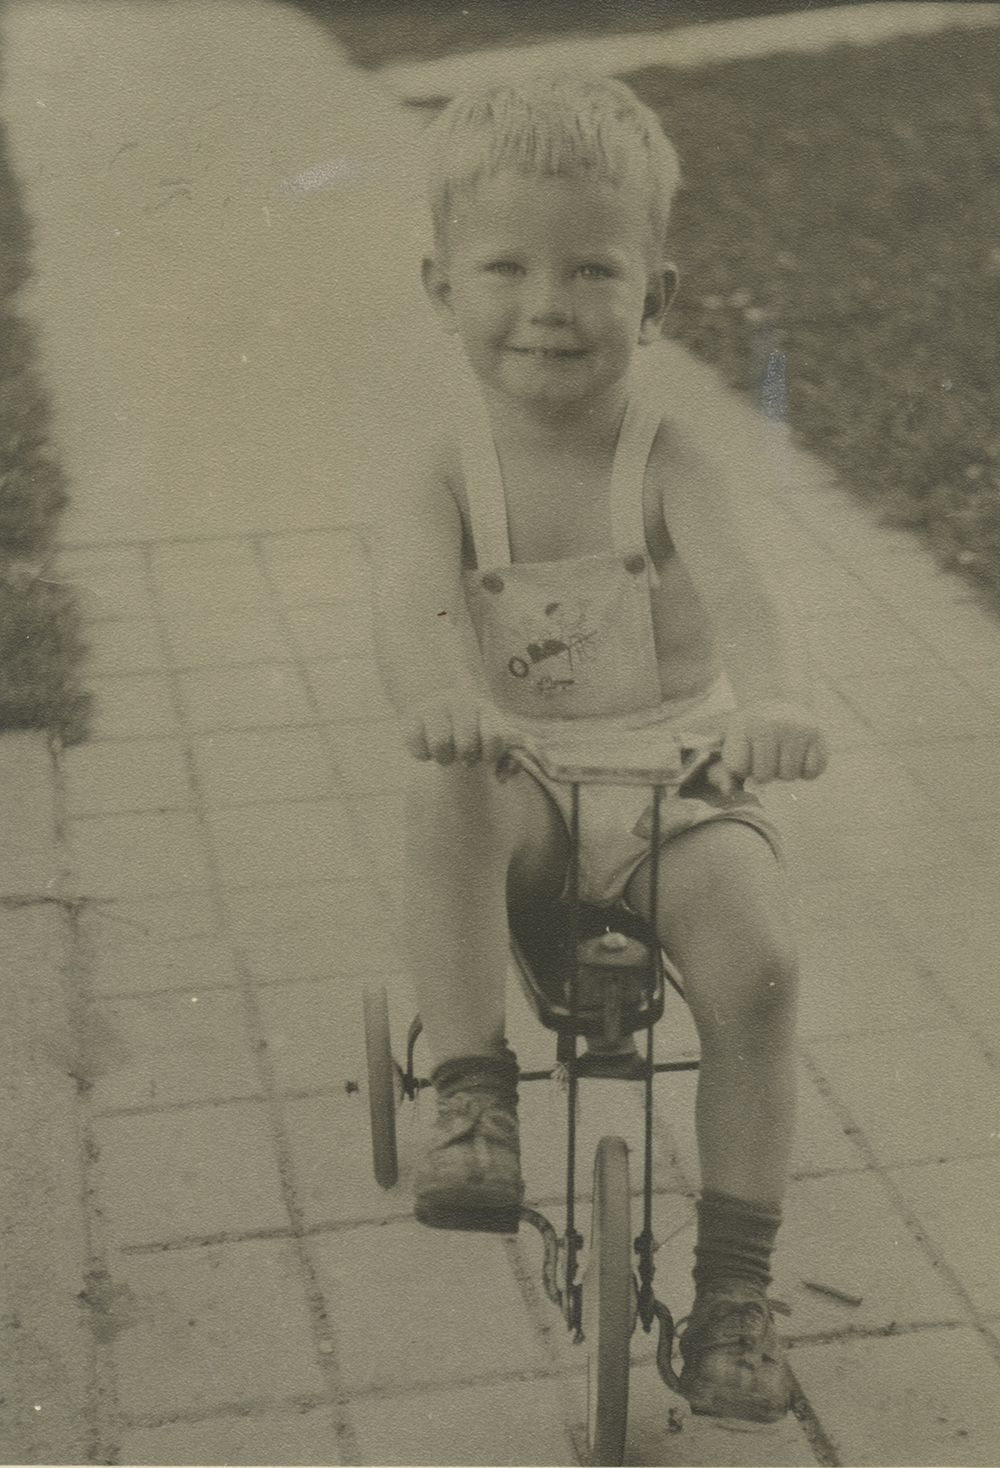 Original Scan of my father, age 3.